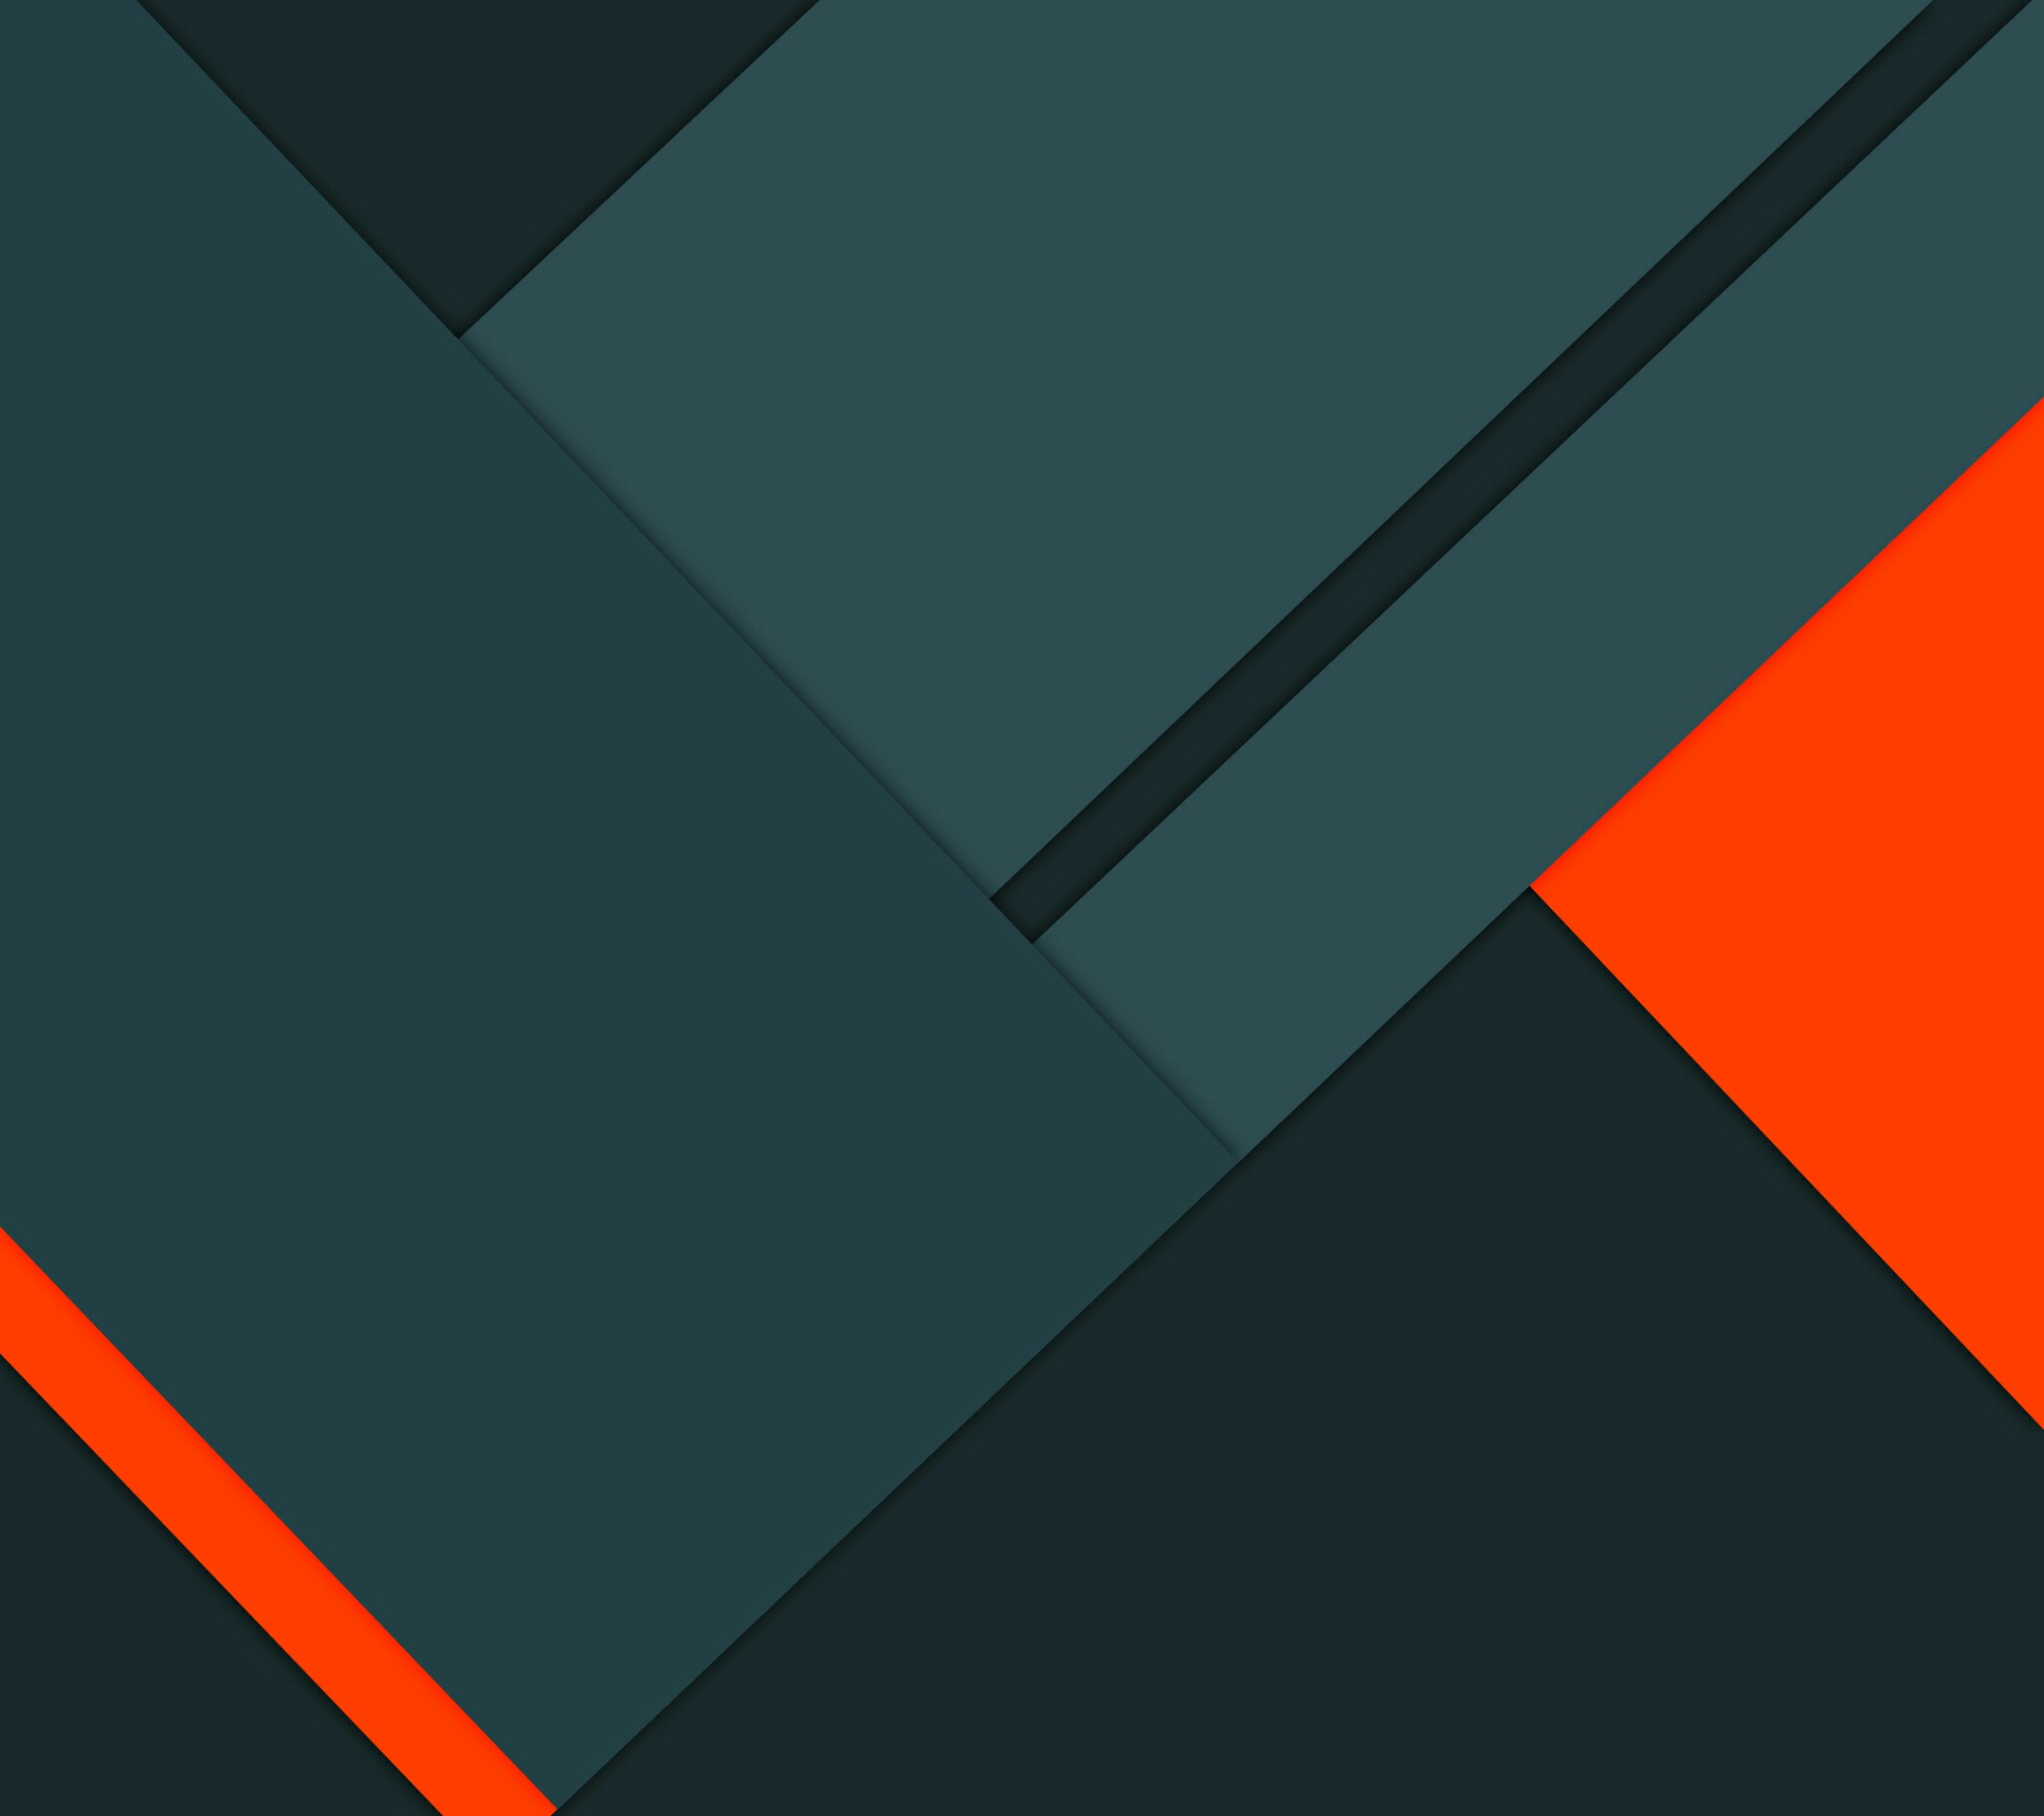 material design wallpapers